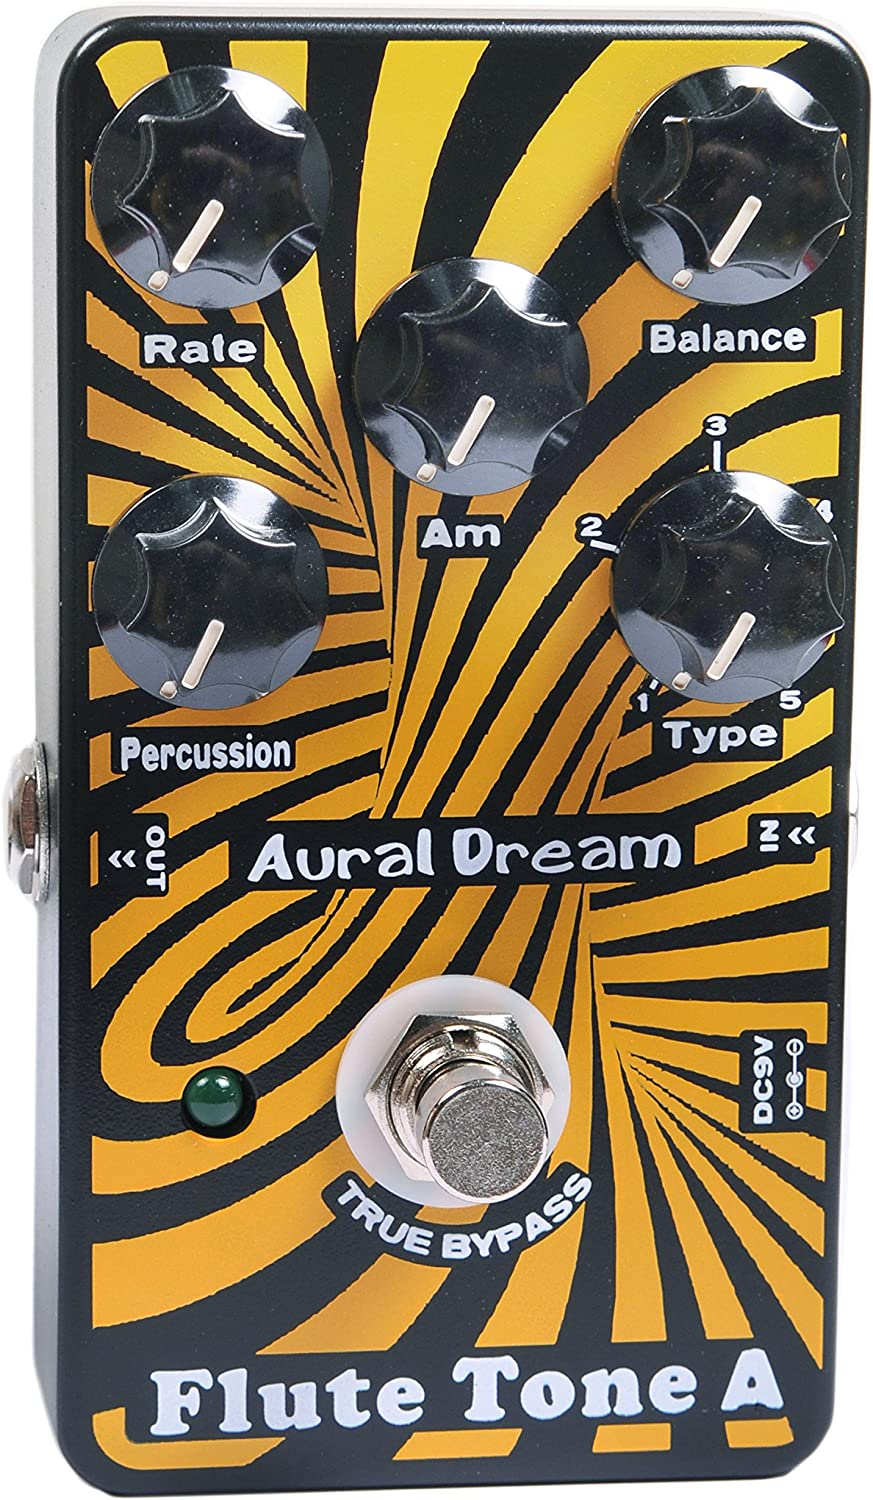 Aural Dream Flute Tone A Synthesizer Guitar Effects Pedal includes harmonic flute,concert flute,theater flute and d'Amour flute with Percussion and Rotary speaker module.